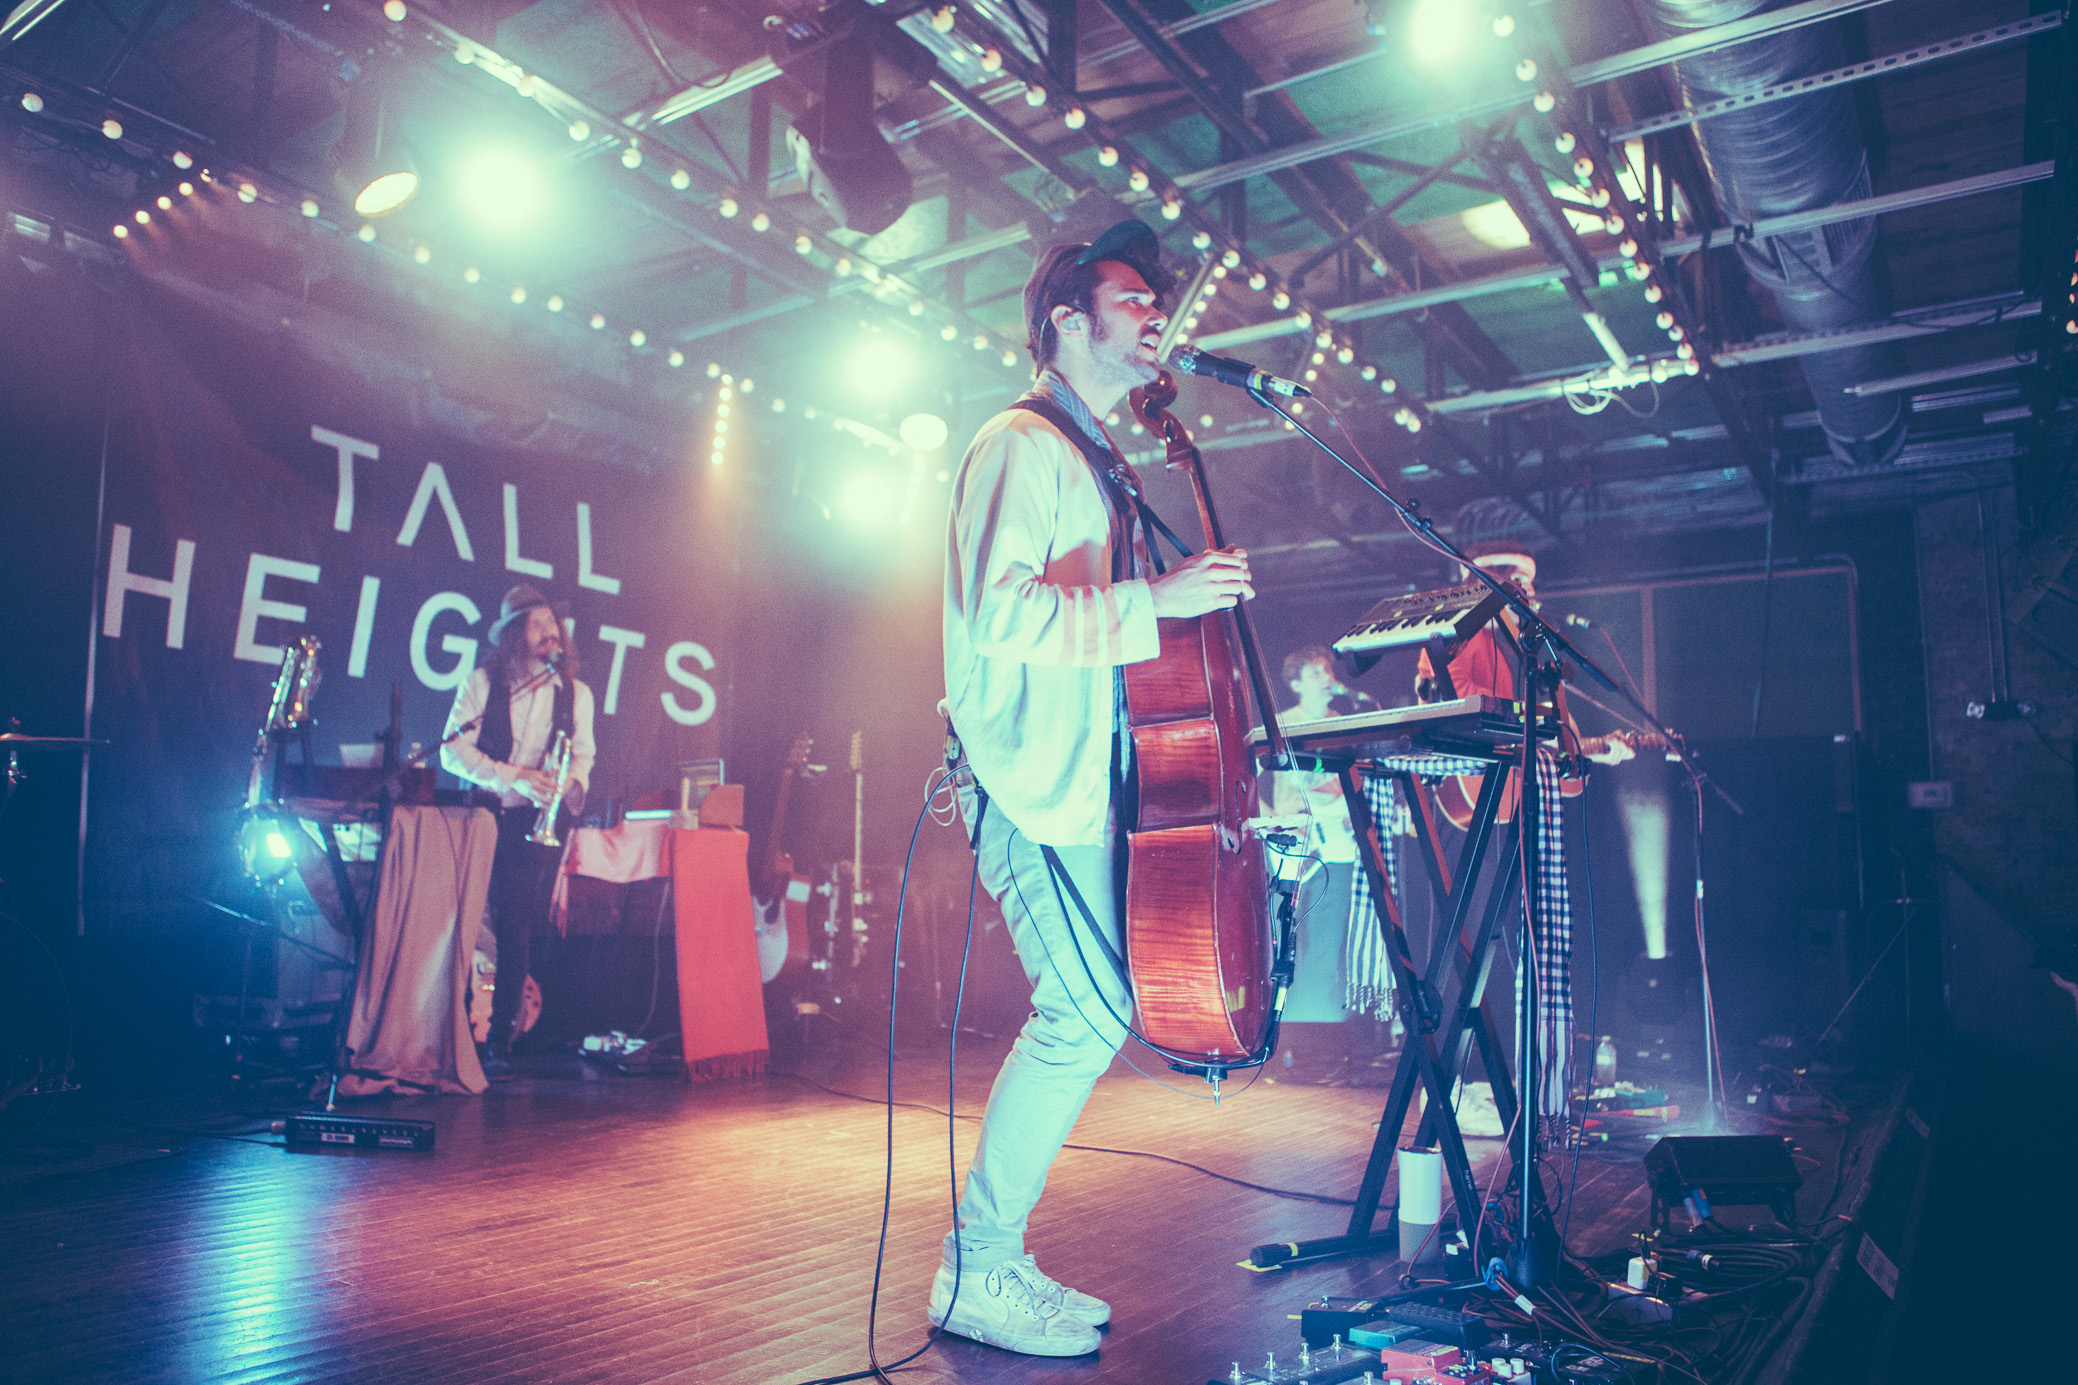 Tall Heights perform in concert at Saturn Birmingham in Birmingham, Alabama on November 13th, 2018. (Photo by David A. Smith / DSmithScenes)